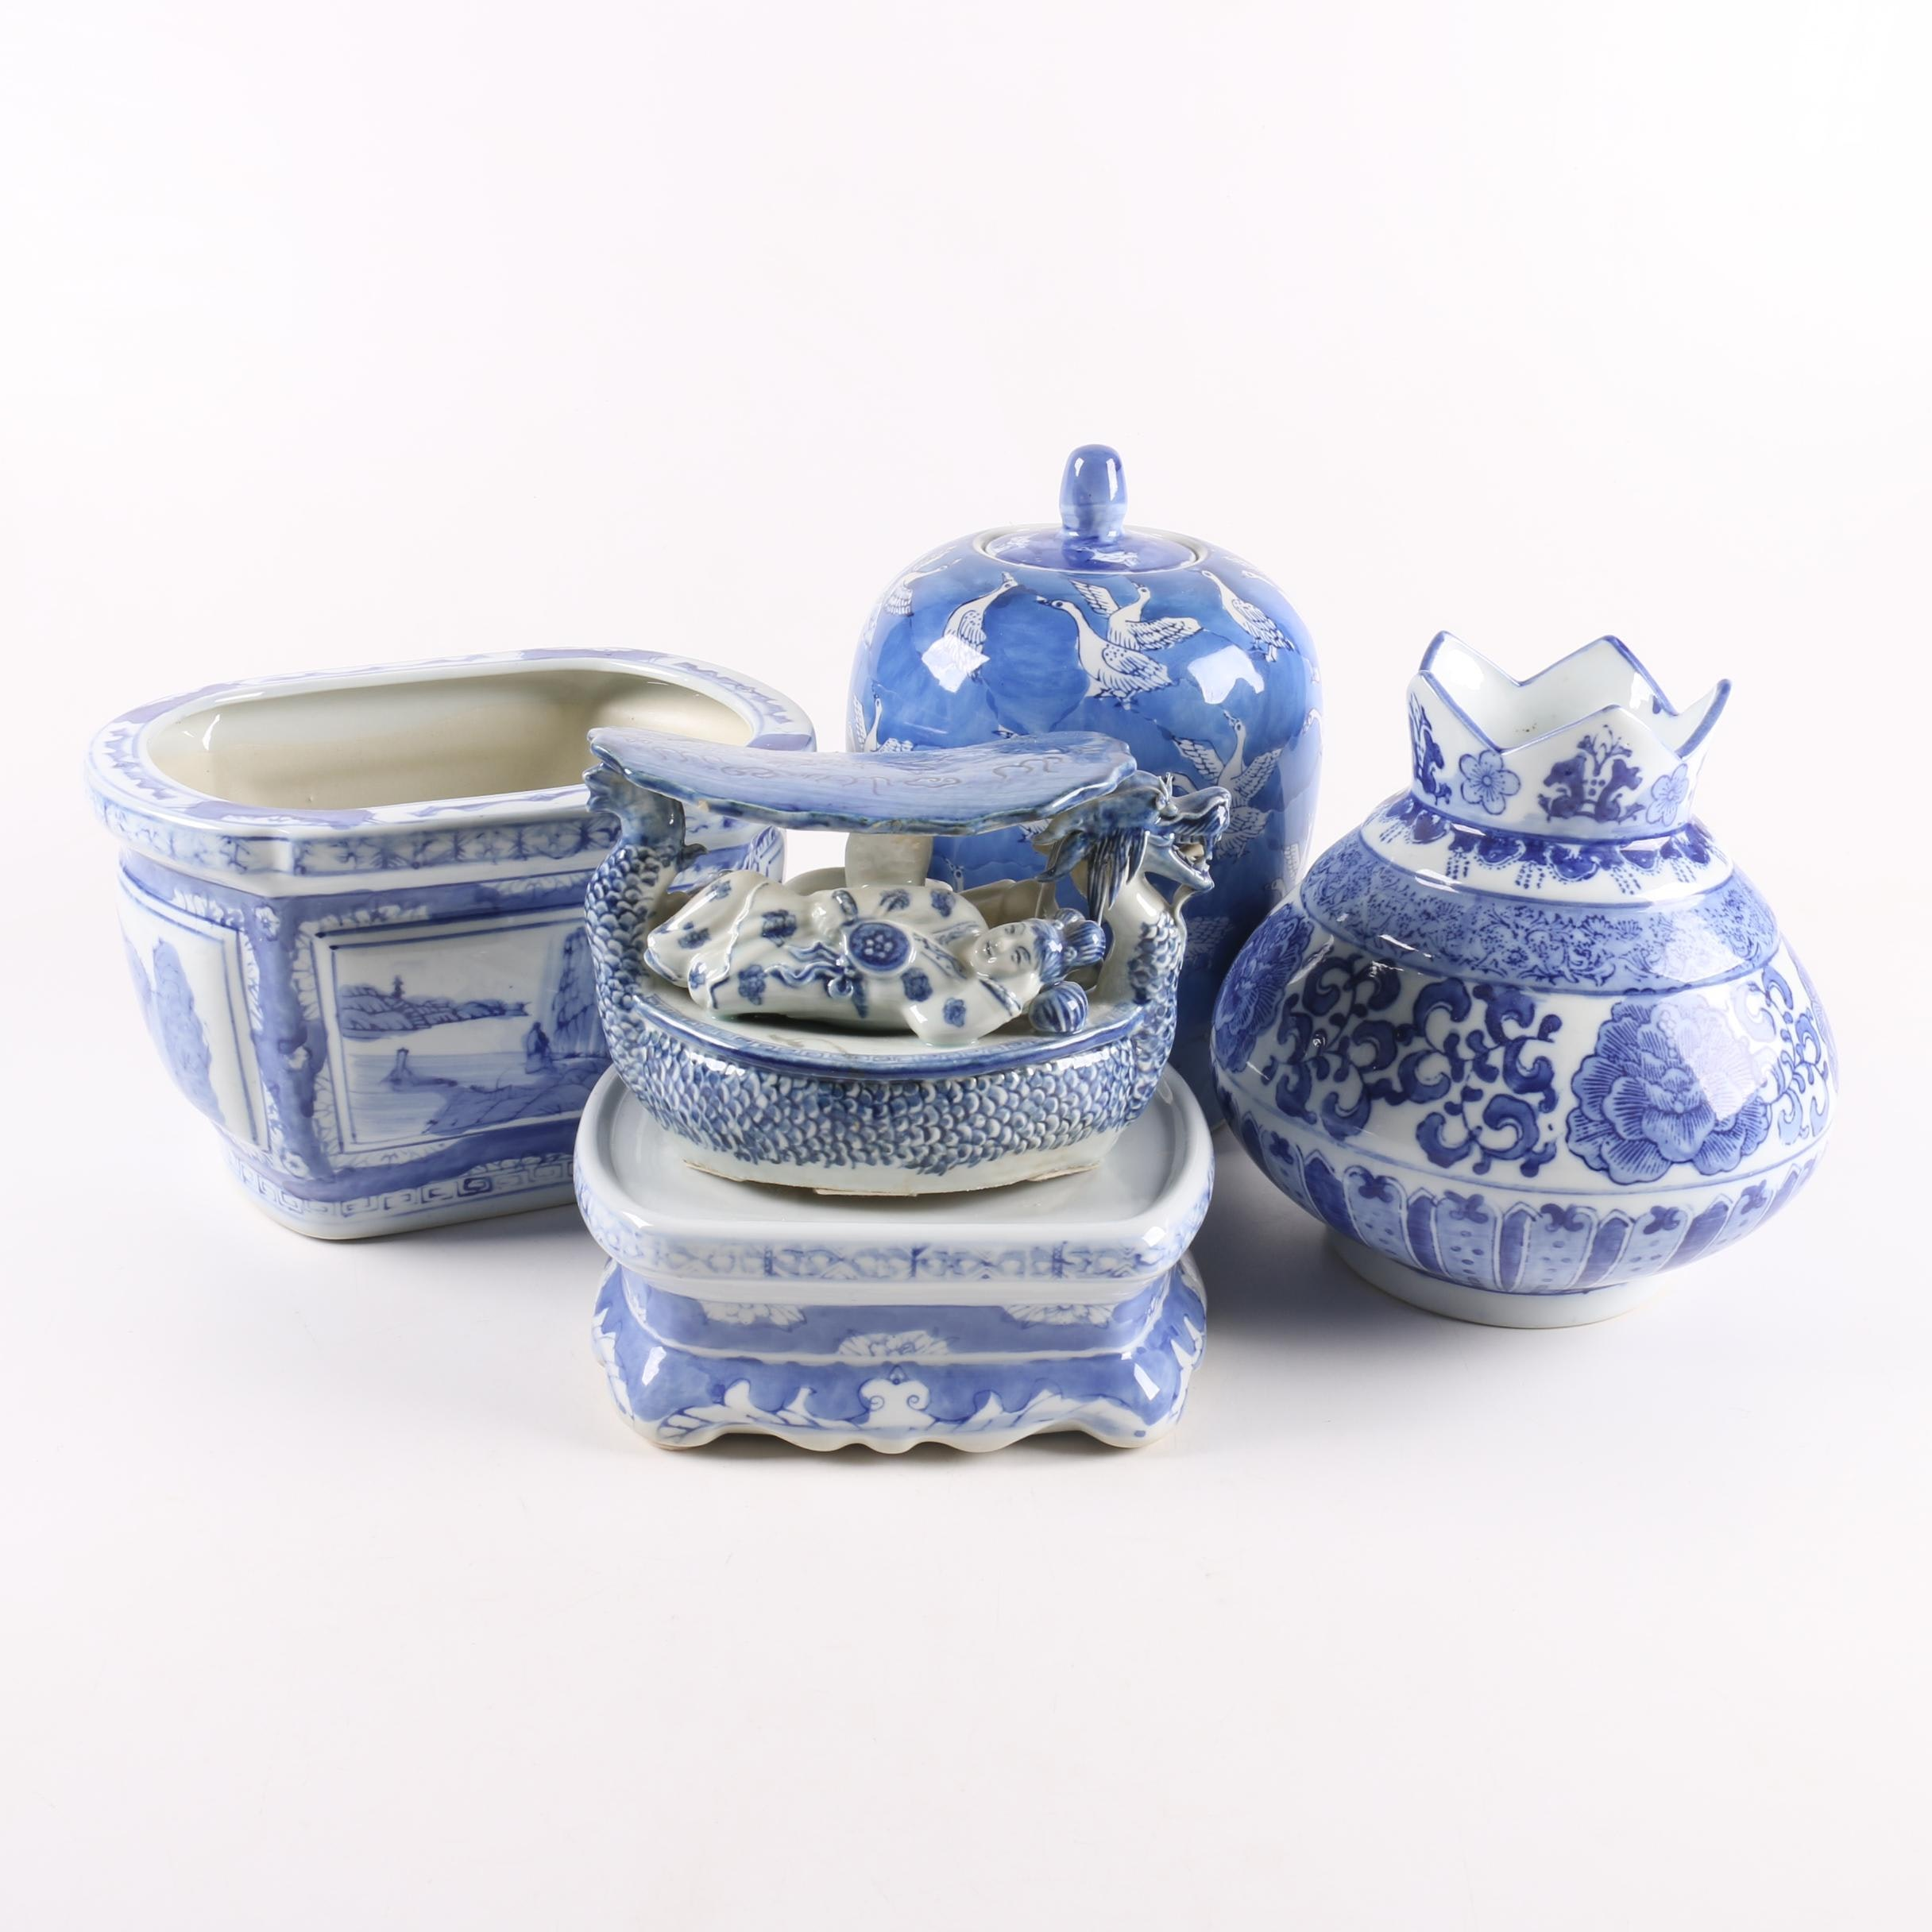 Chinese Blue and White Porcelain Decor